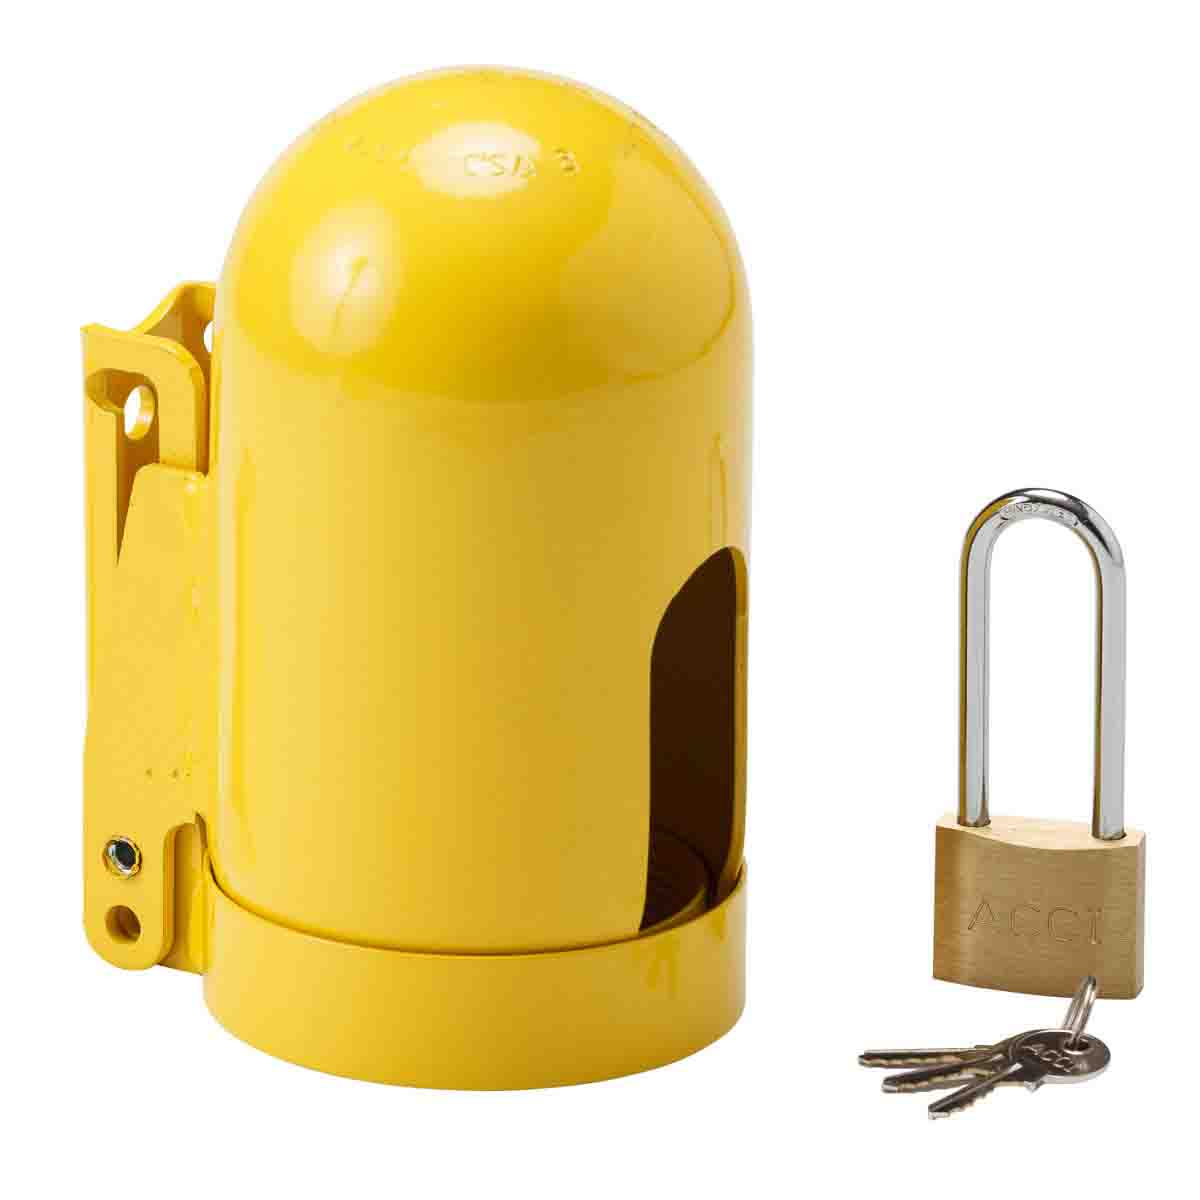 Snap Cap Gas Cylinder Lockout Device